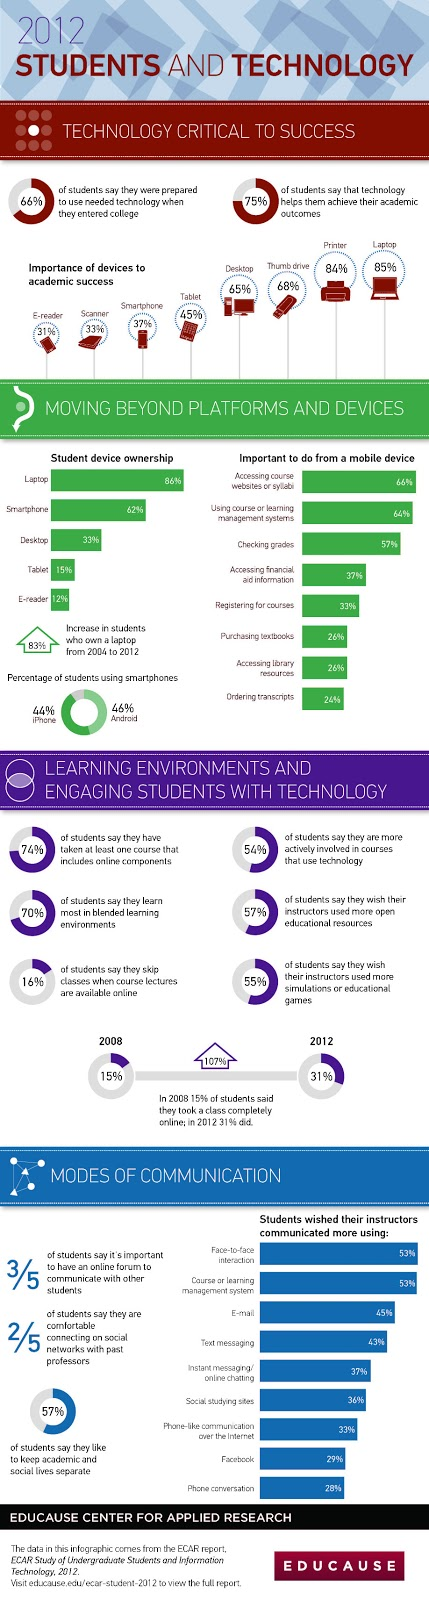 ECAR Student and Technology 2012 Infographic.  Source: Source: http://net.educause.edu/ir/library/pdf/ERS1208/EIG1208.pdf